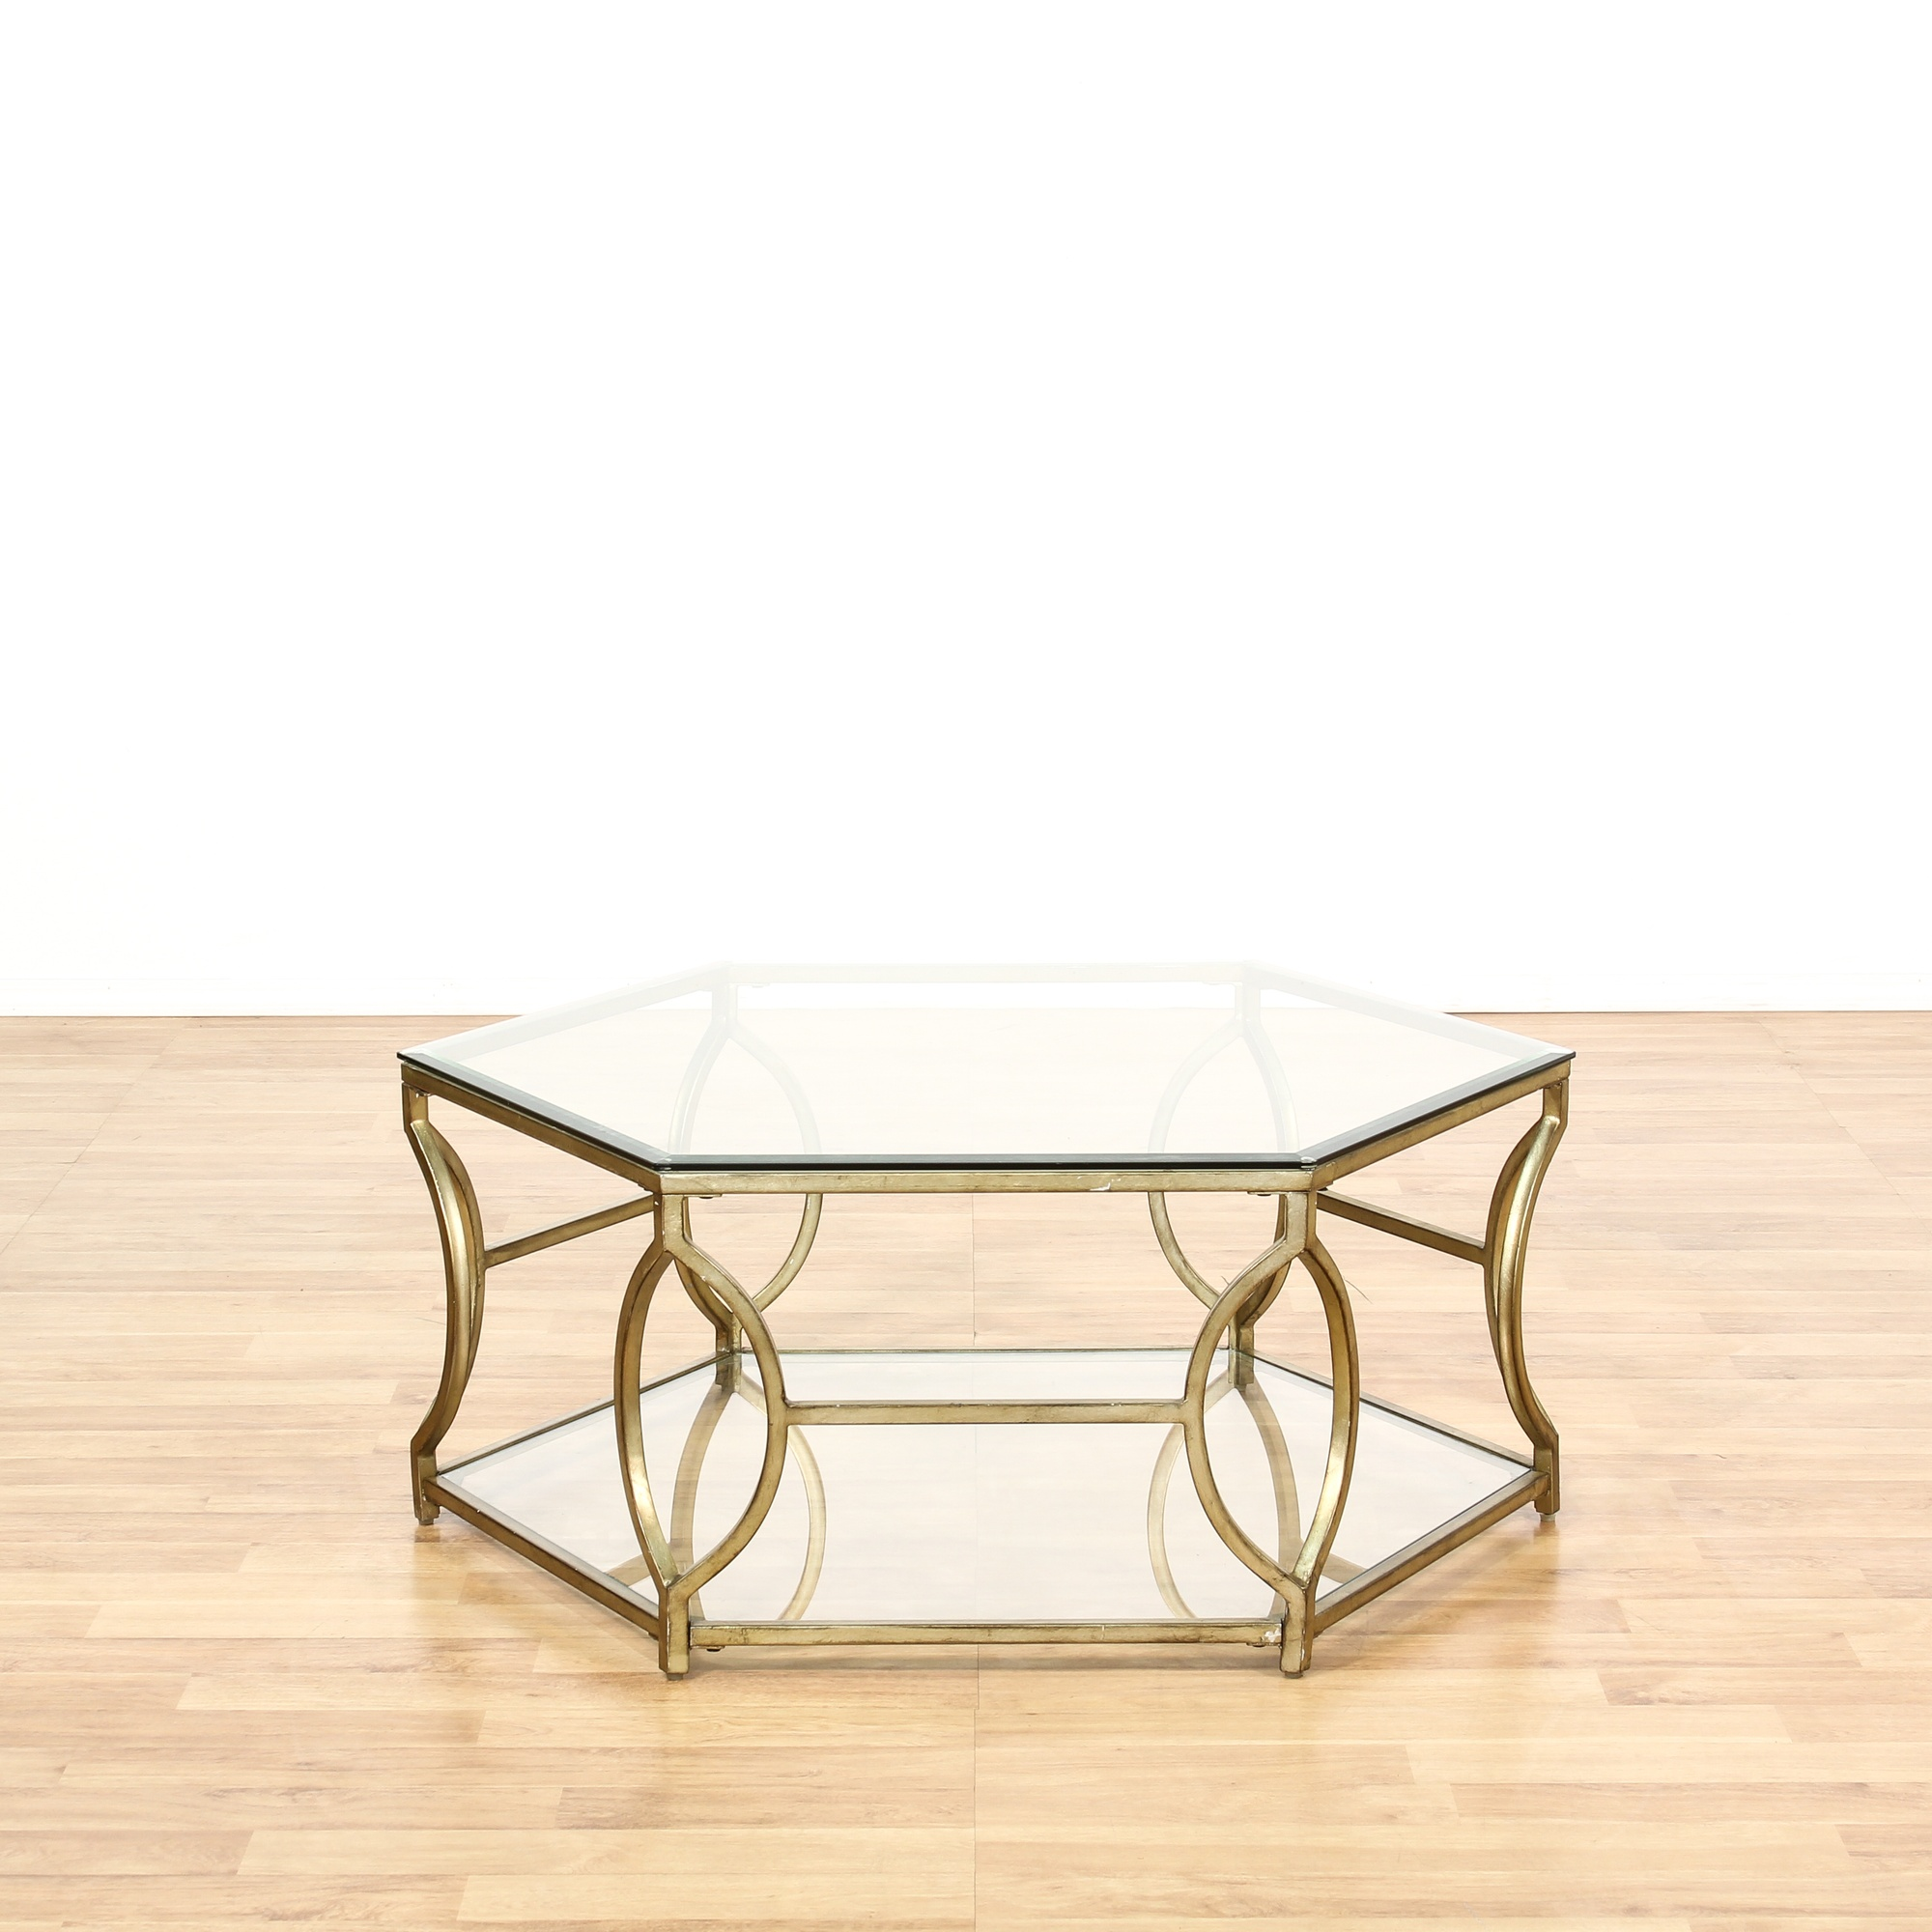 Two Tiered Brass And Glass Coffee Table: Brass & Glass 2 Tier Octagon Shaped Coffee Table